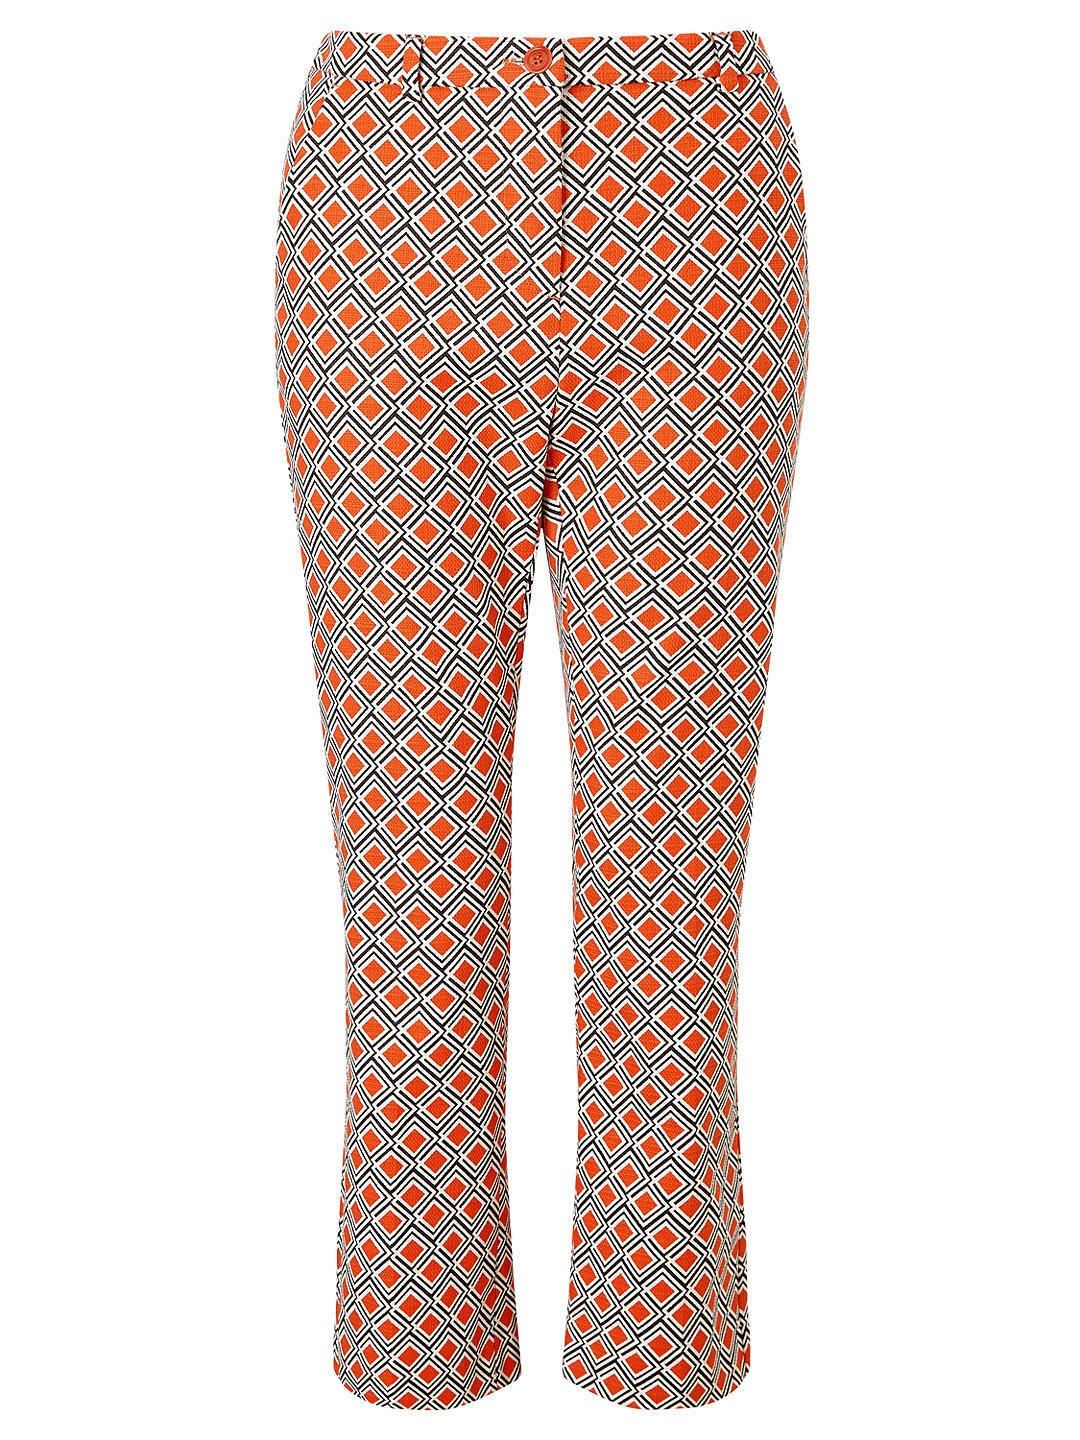 Weekend Max Mara Vadet Stretch Cotton Trousers orange Size